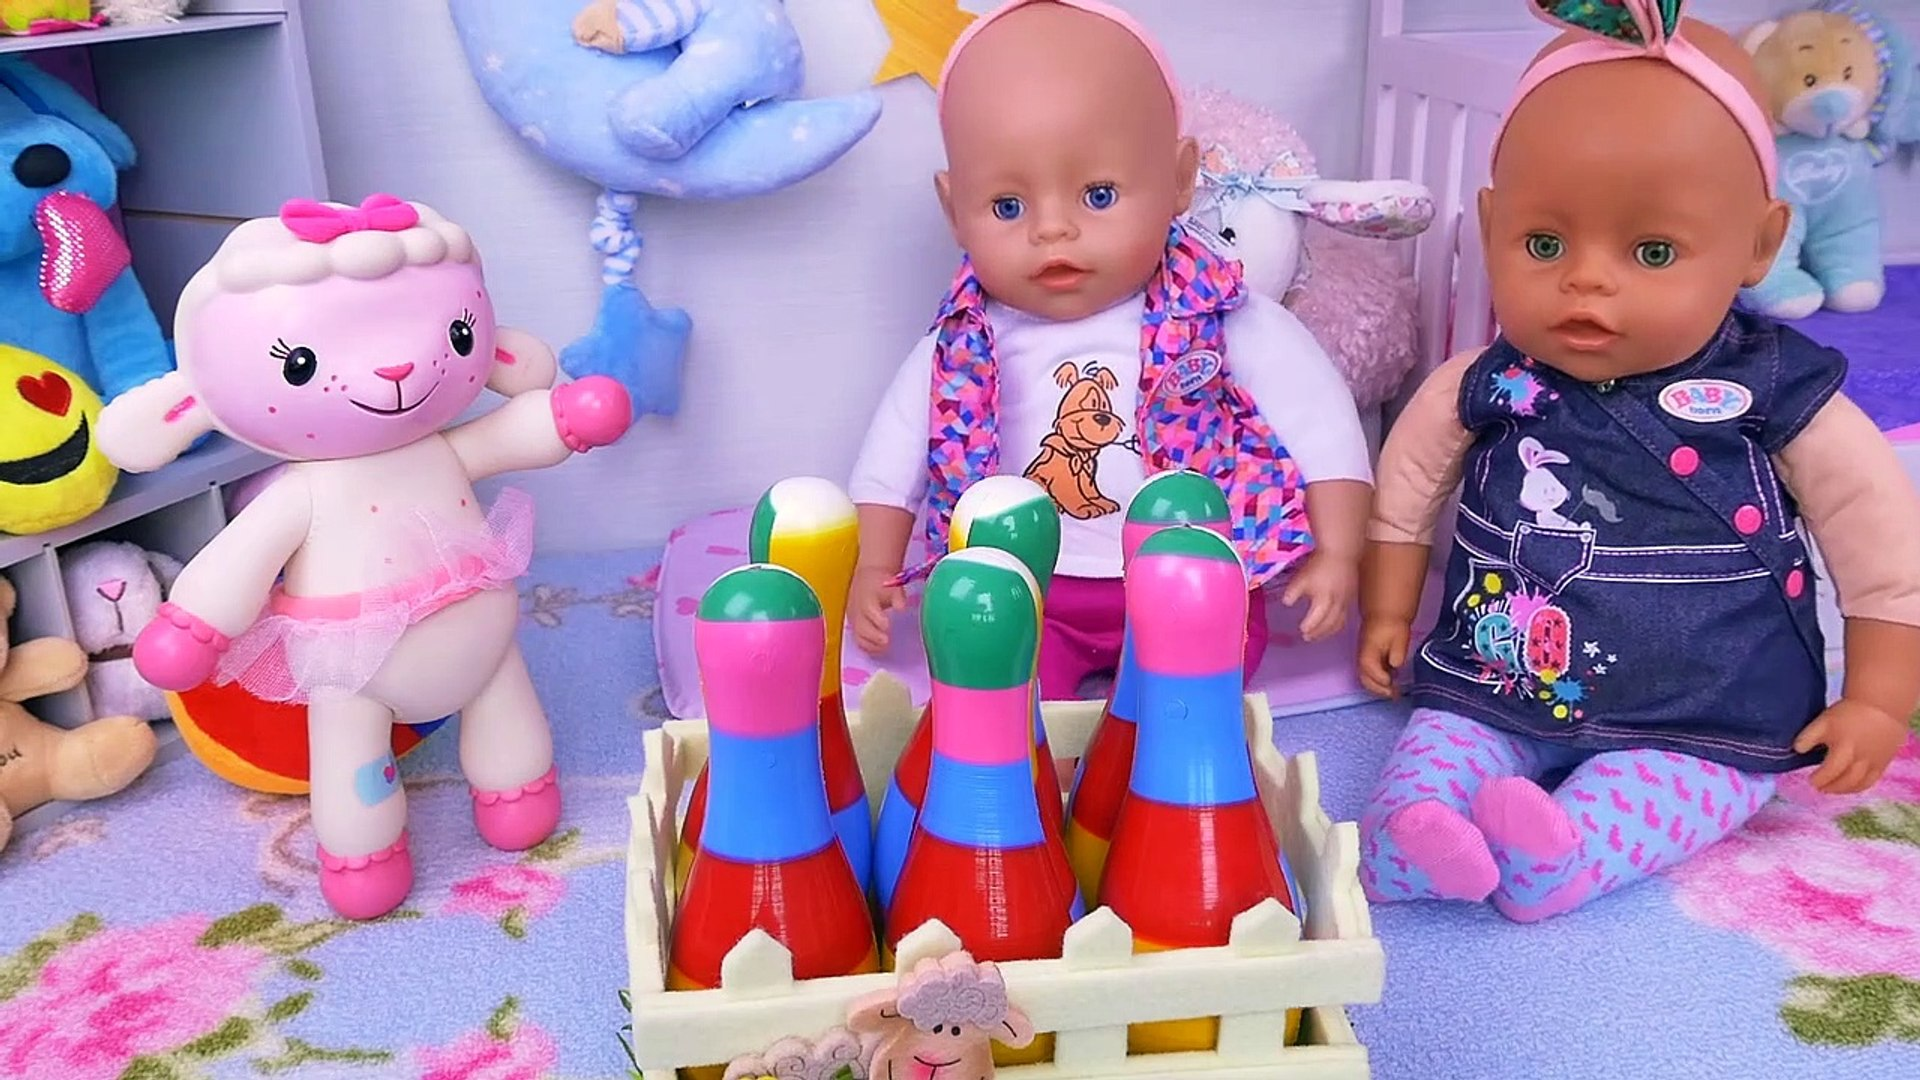 Baby Born Twin Dolls Morning Routine In Bunk Bed Room Video Dailymotion